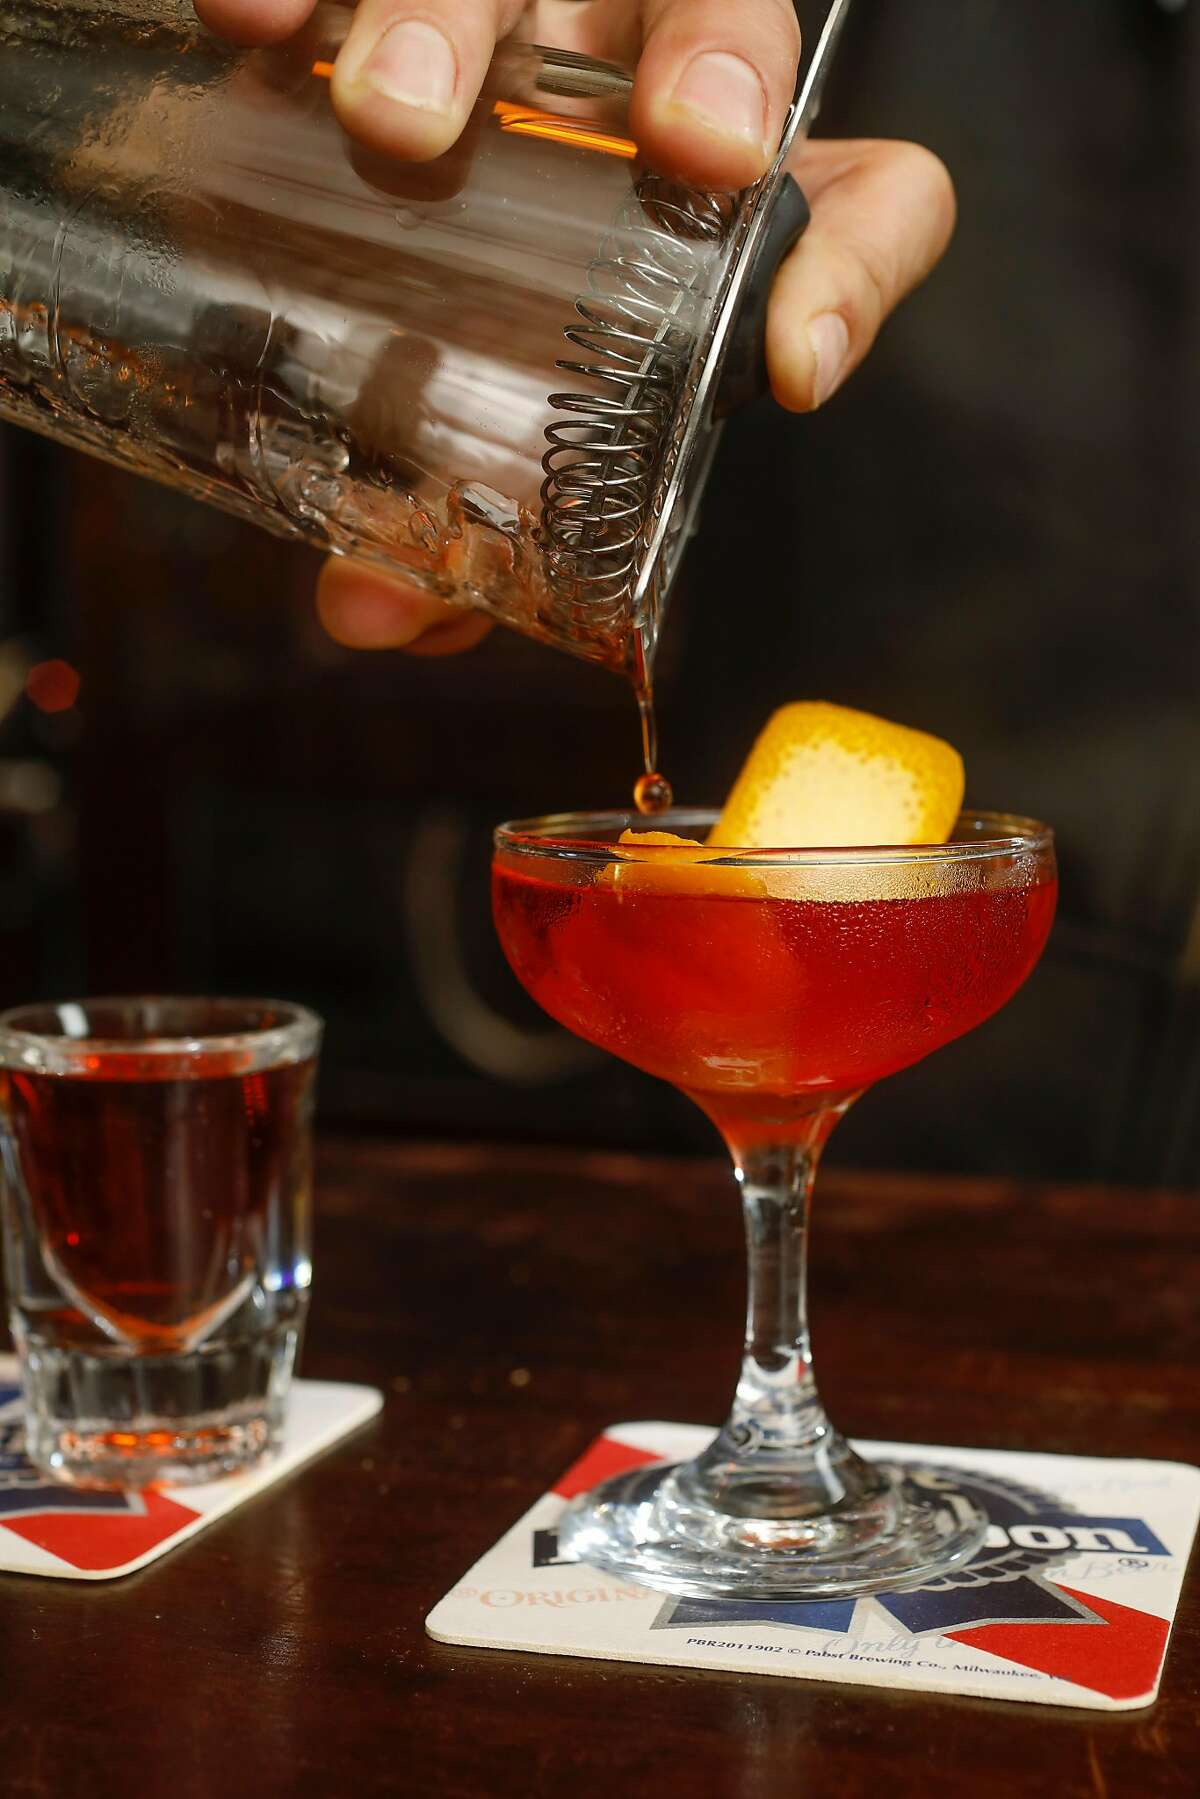 A Mescal Negroni at Wooden Nickel, a dive bar in the Mission district as seen in San Francisco, California, on August 6, 2018.